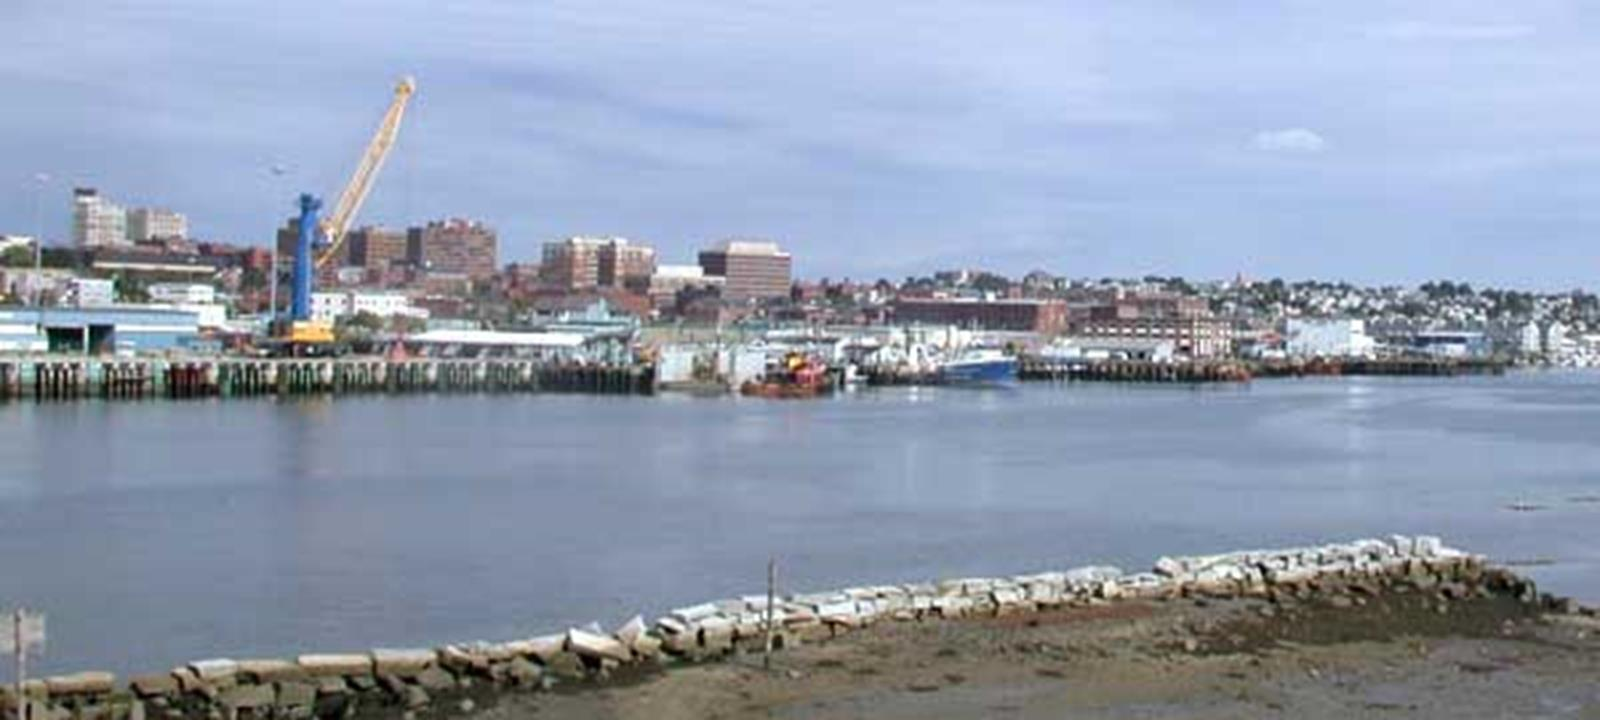 Portland, Maine, One of the Top Distinctive Destinations